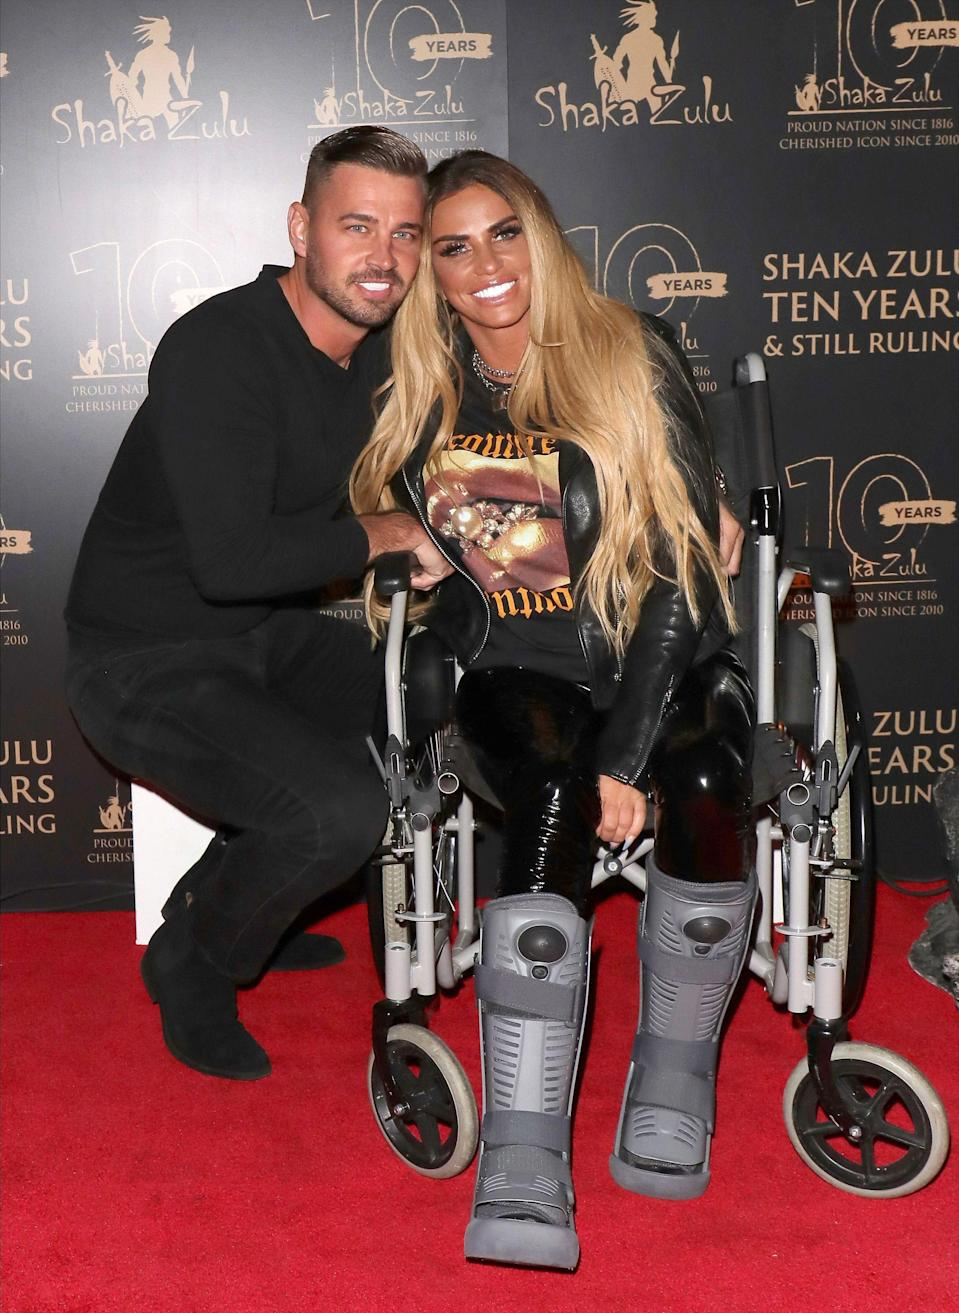 Carl Woods and Katie Price pictured at an event in September 2020 (Photo: Mark R Milan/Shutterstock)